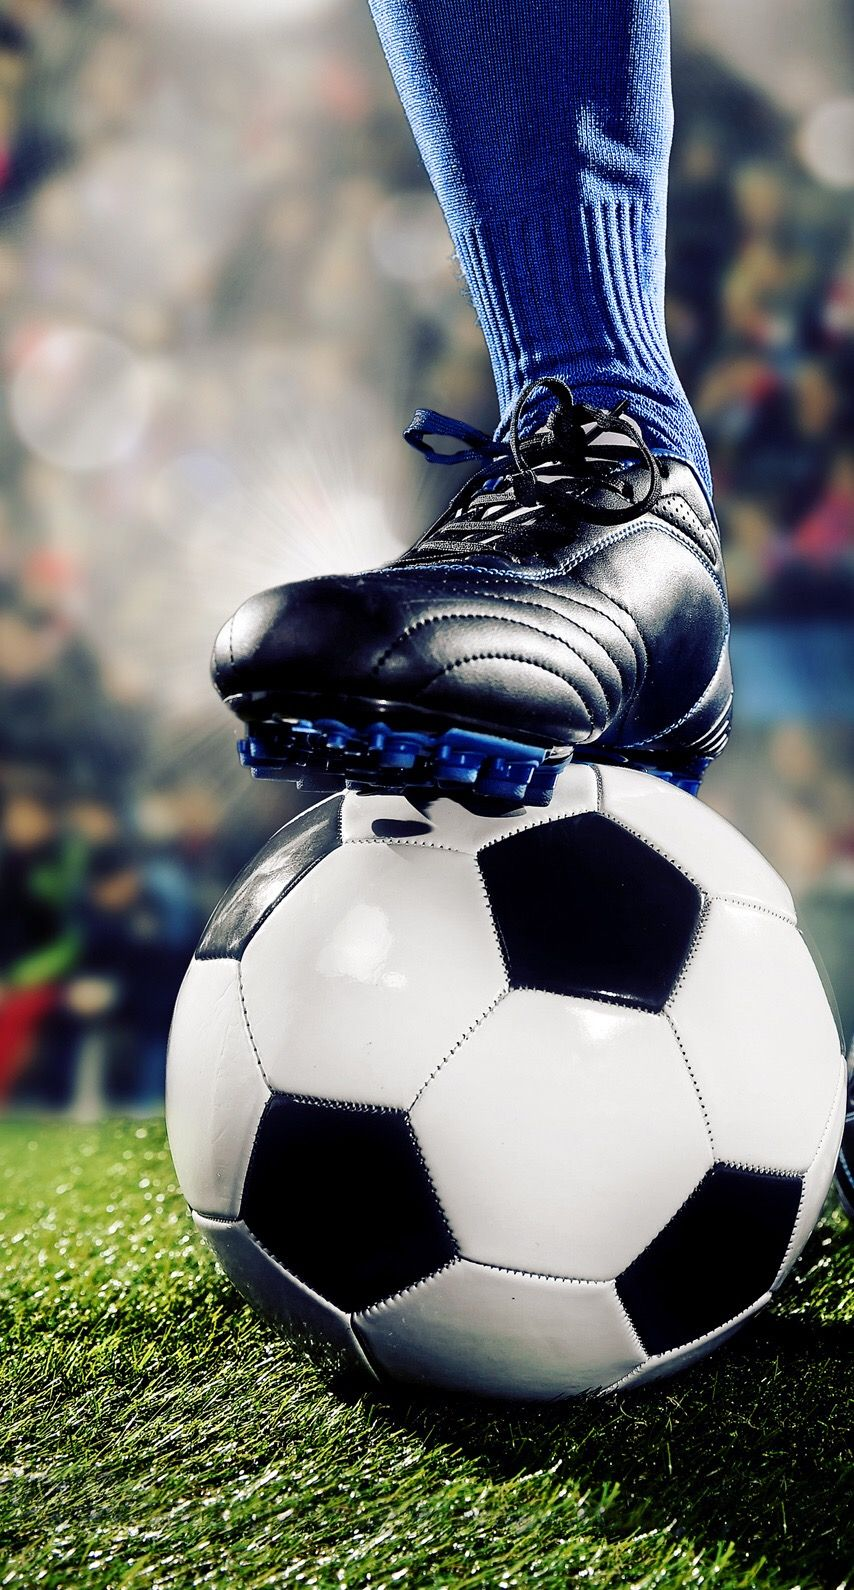 Hd Football Images Background Wallpapers Football Images Soccer Custom Soccer